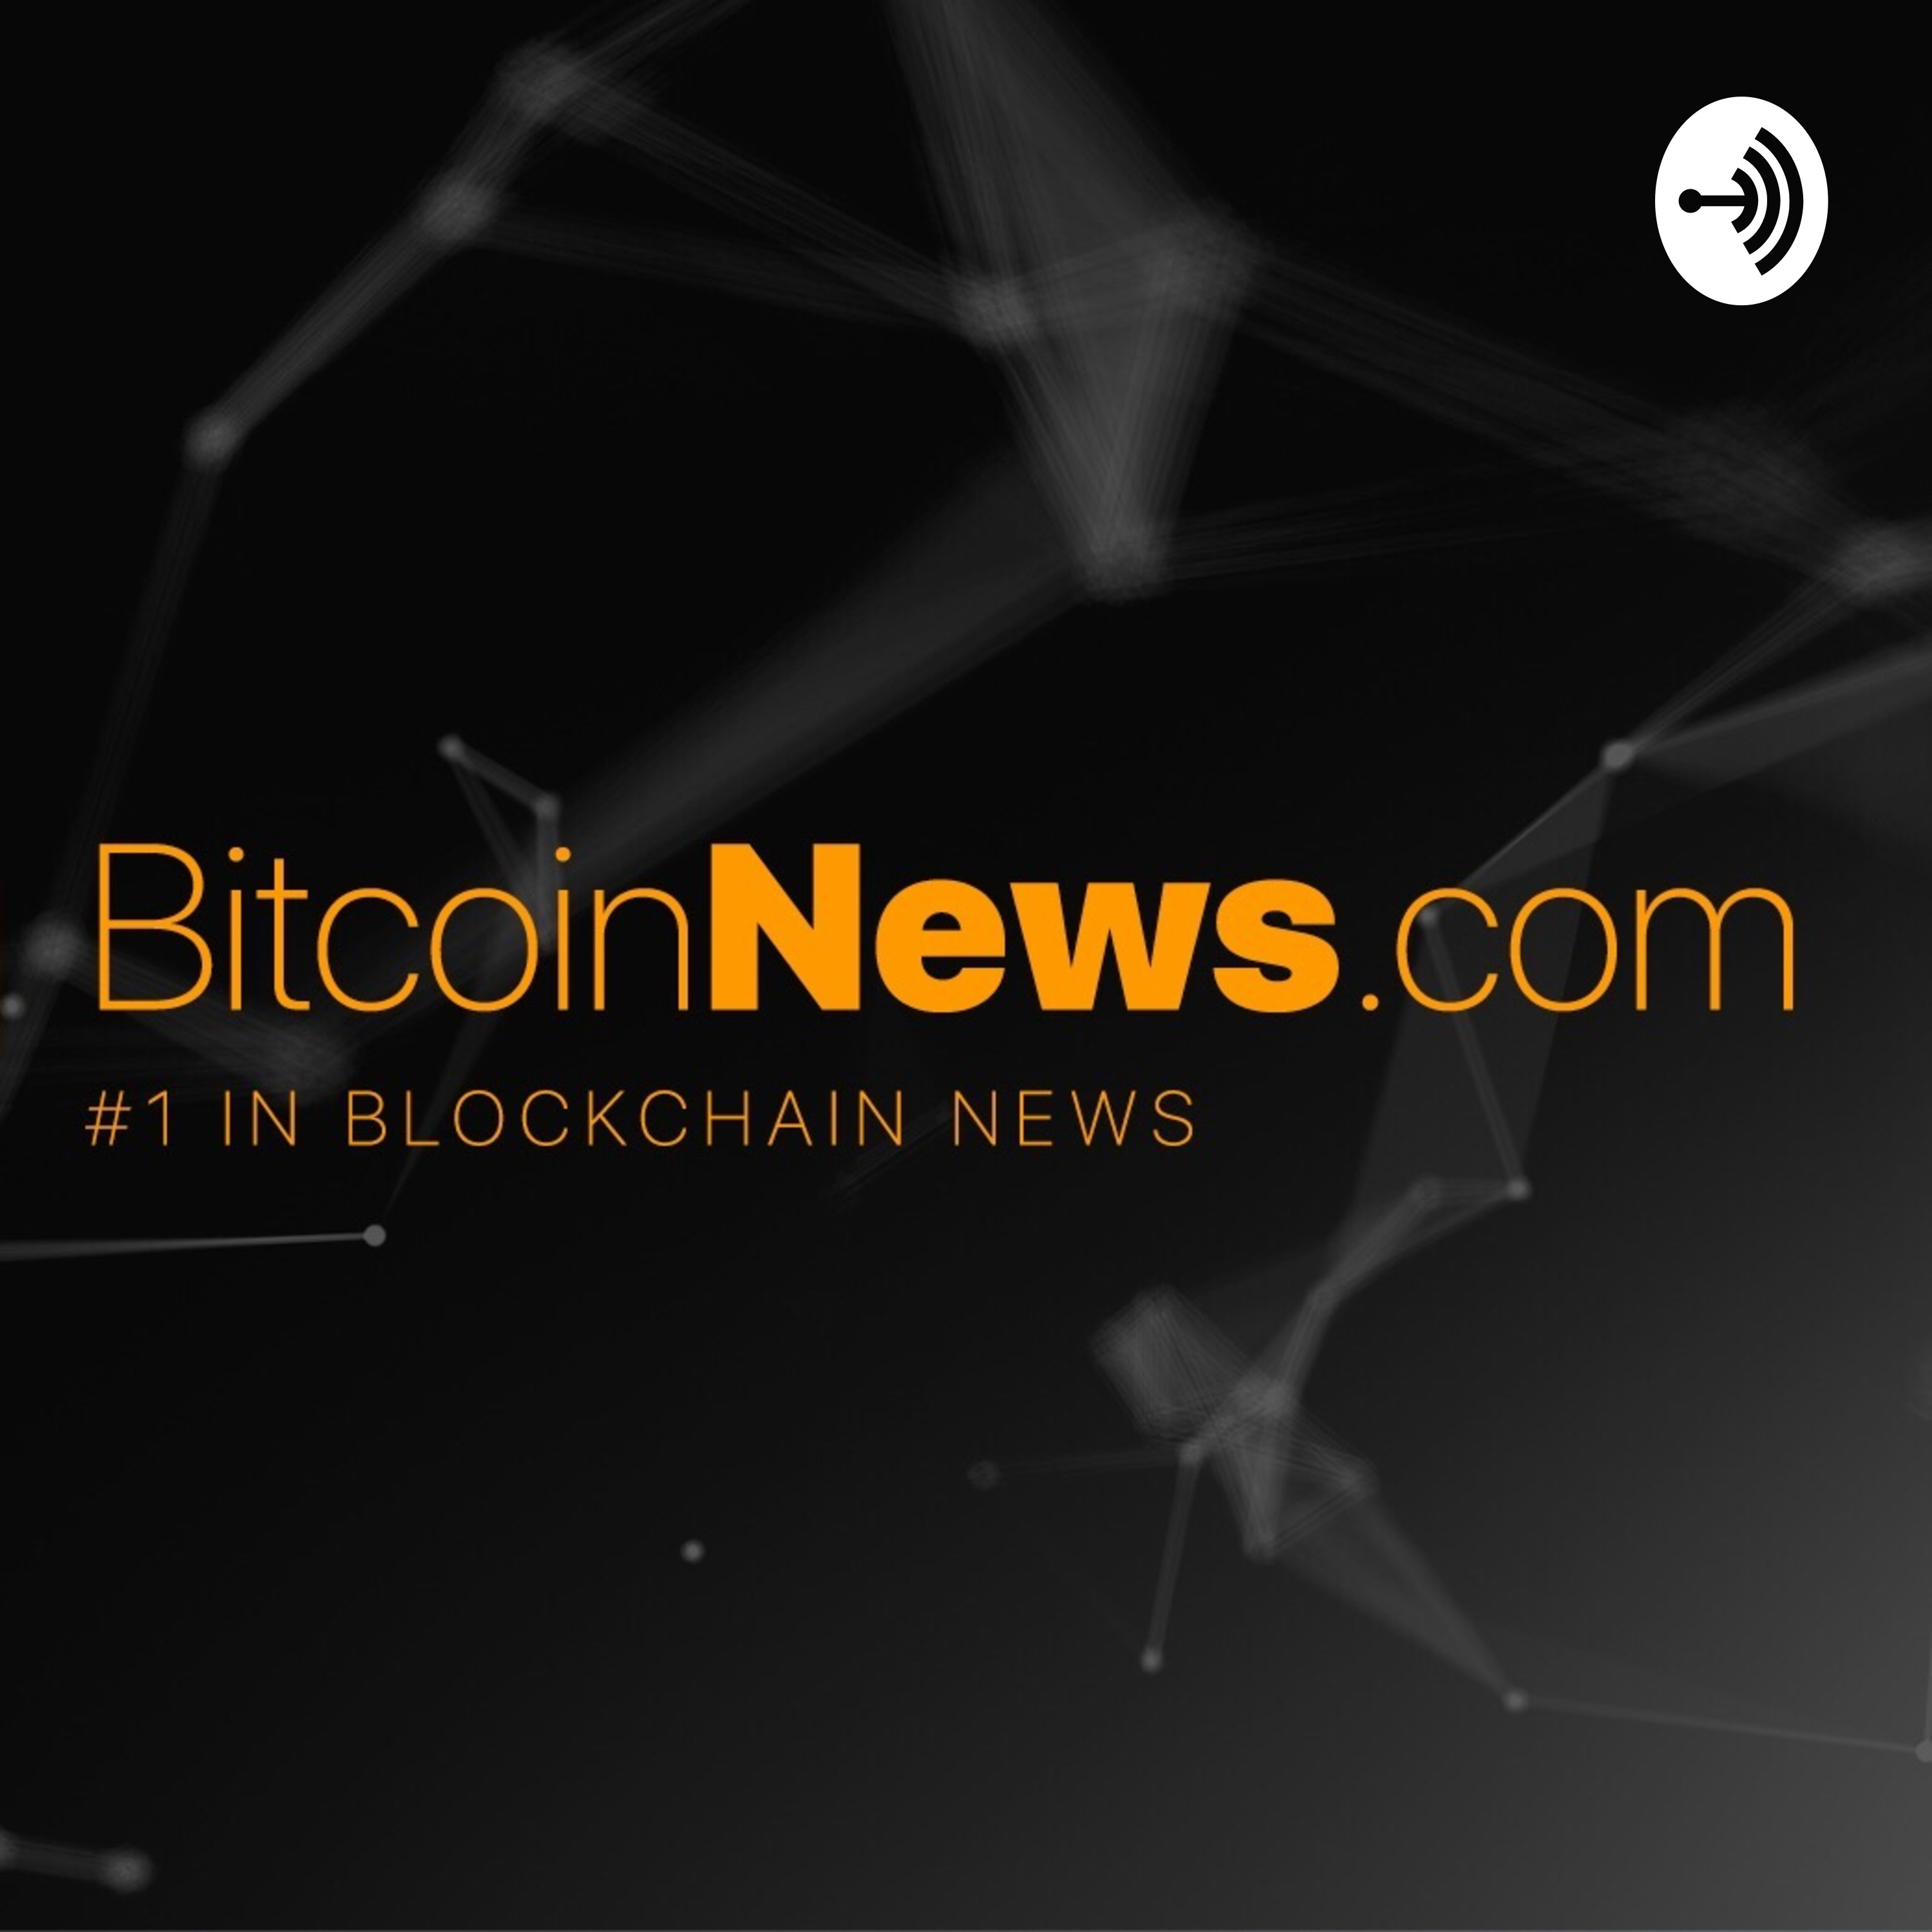 BitcoinNews.com Daily Podcast 25th December 2018: Crypto Down On Christmas, CME Expiration In 3 Days